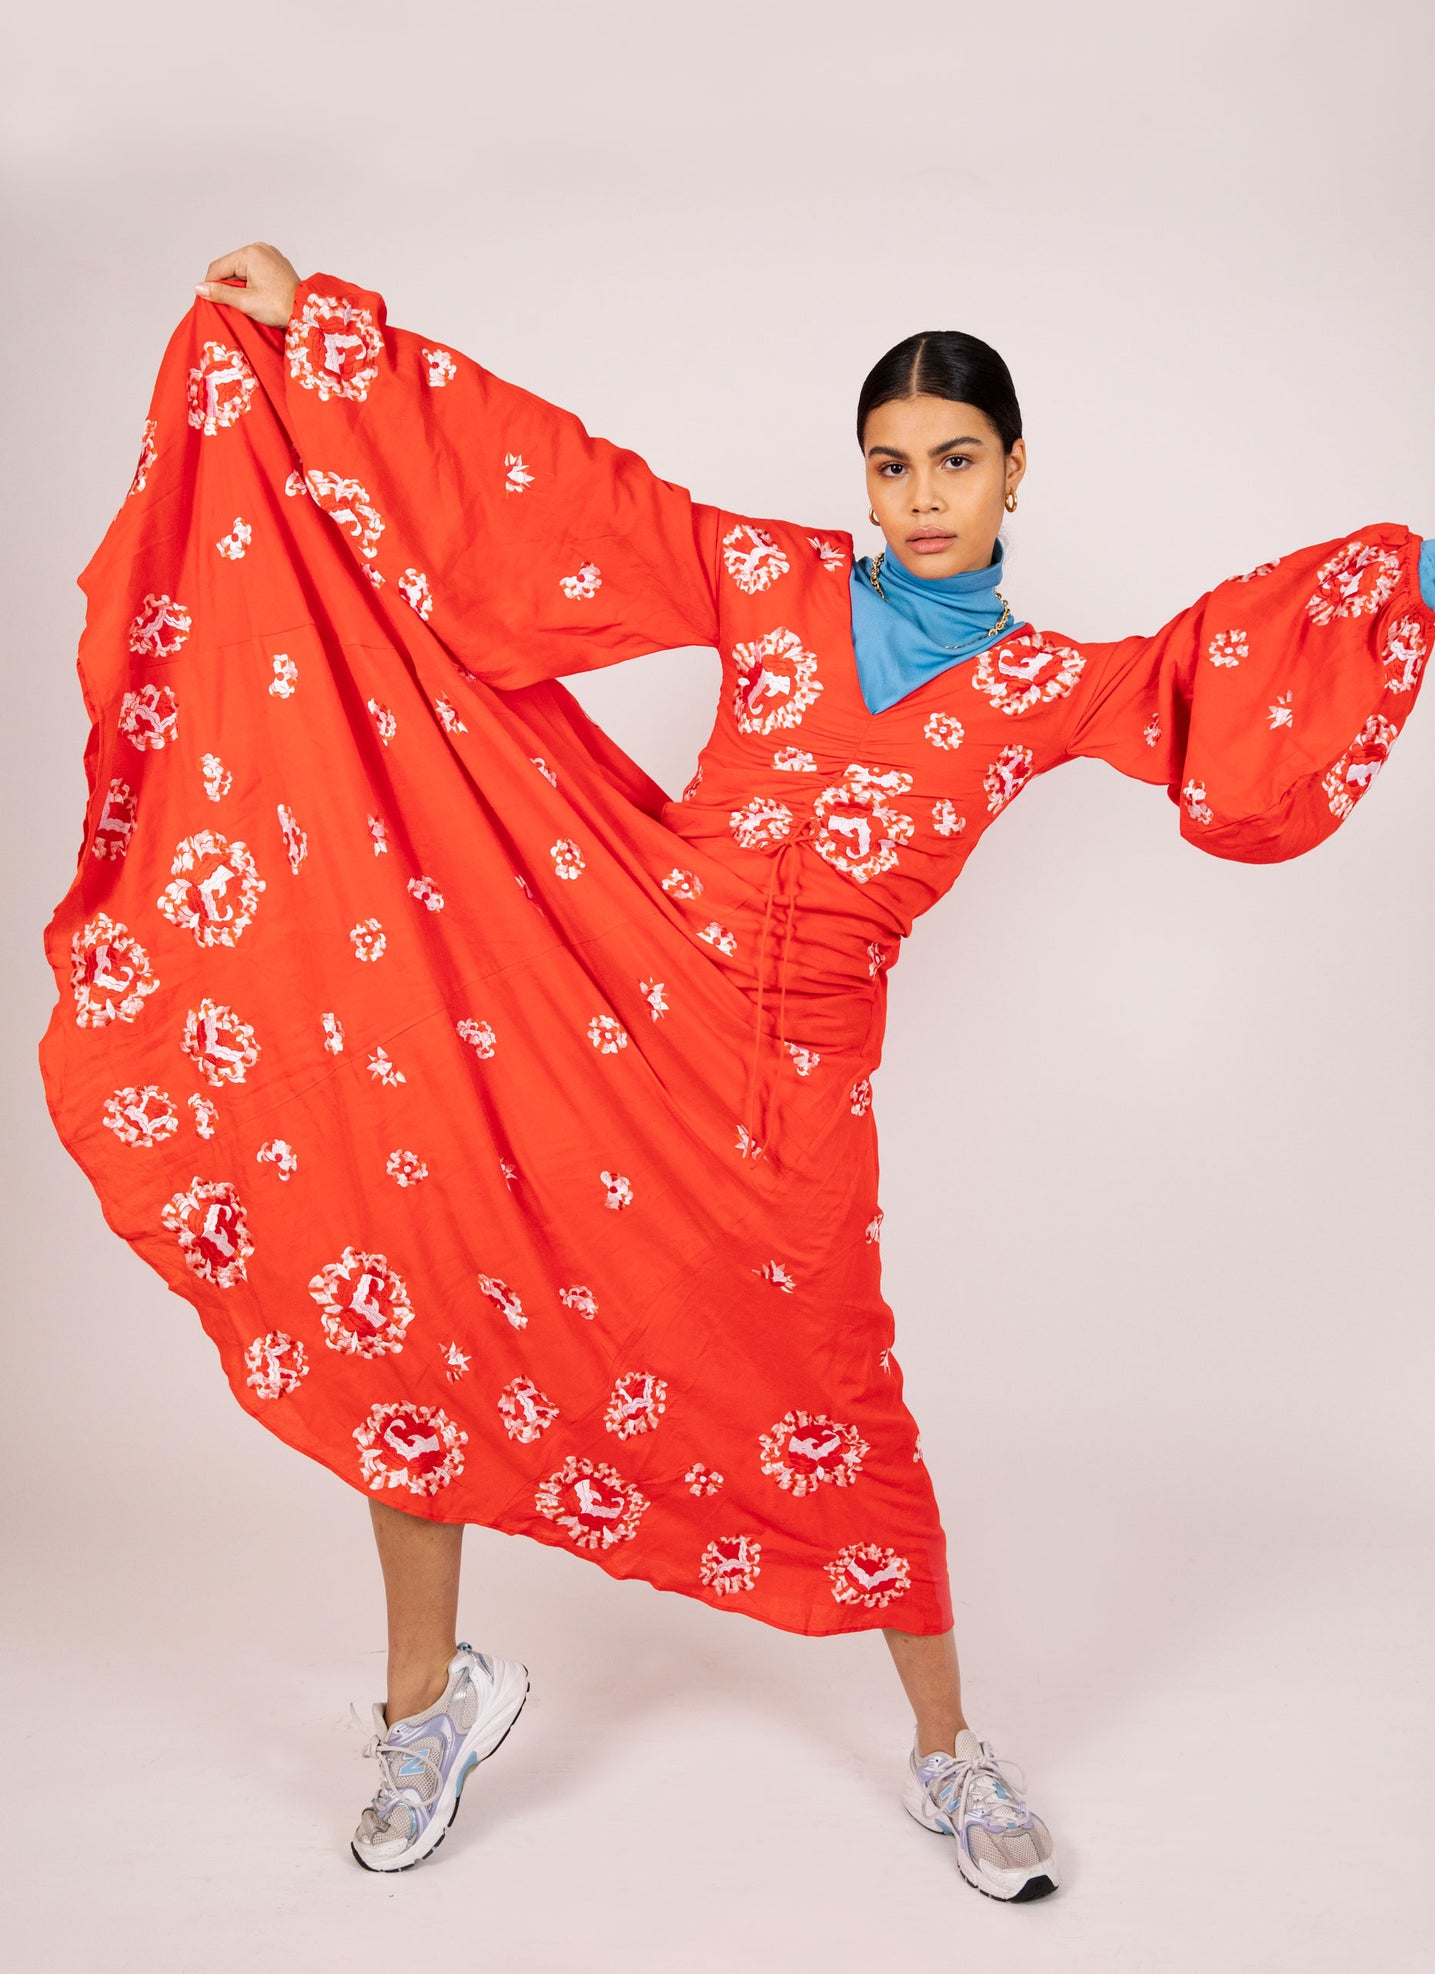 Catalina Dress - Mochi - Red dress inspired by the Spanish culture